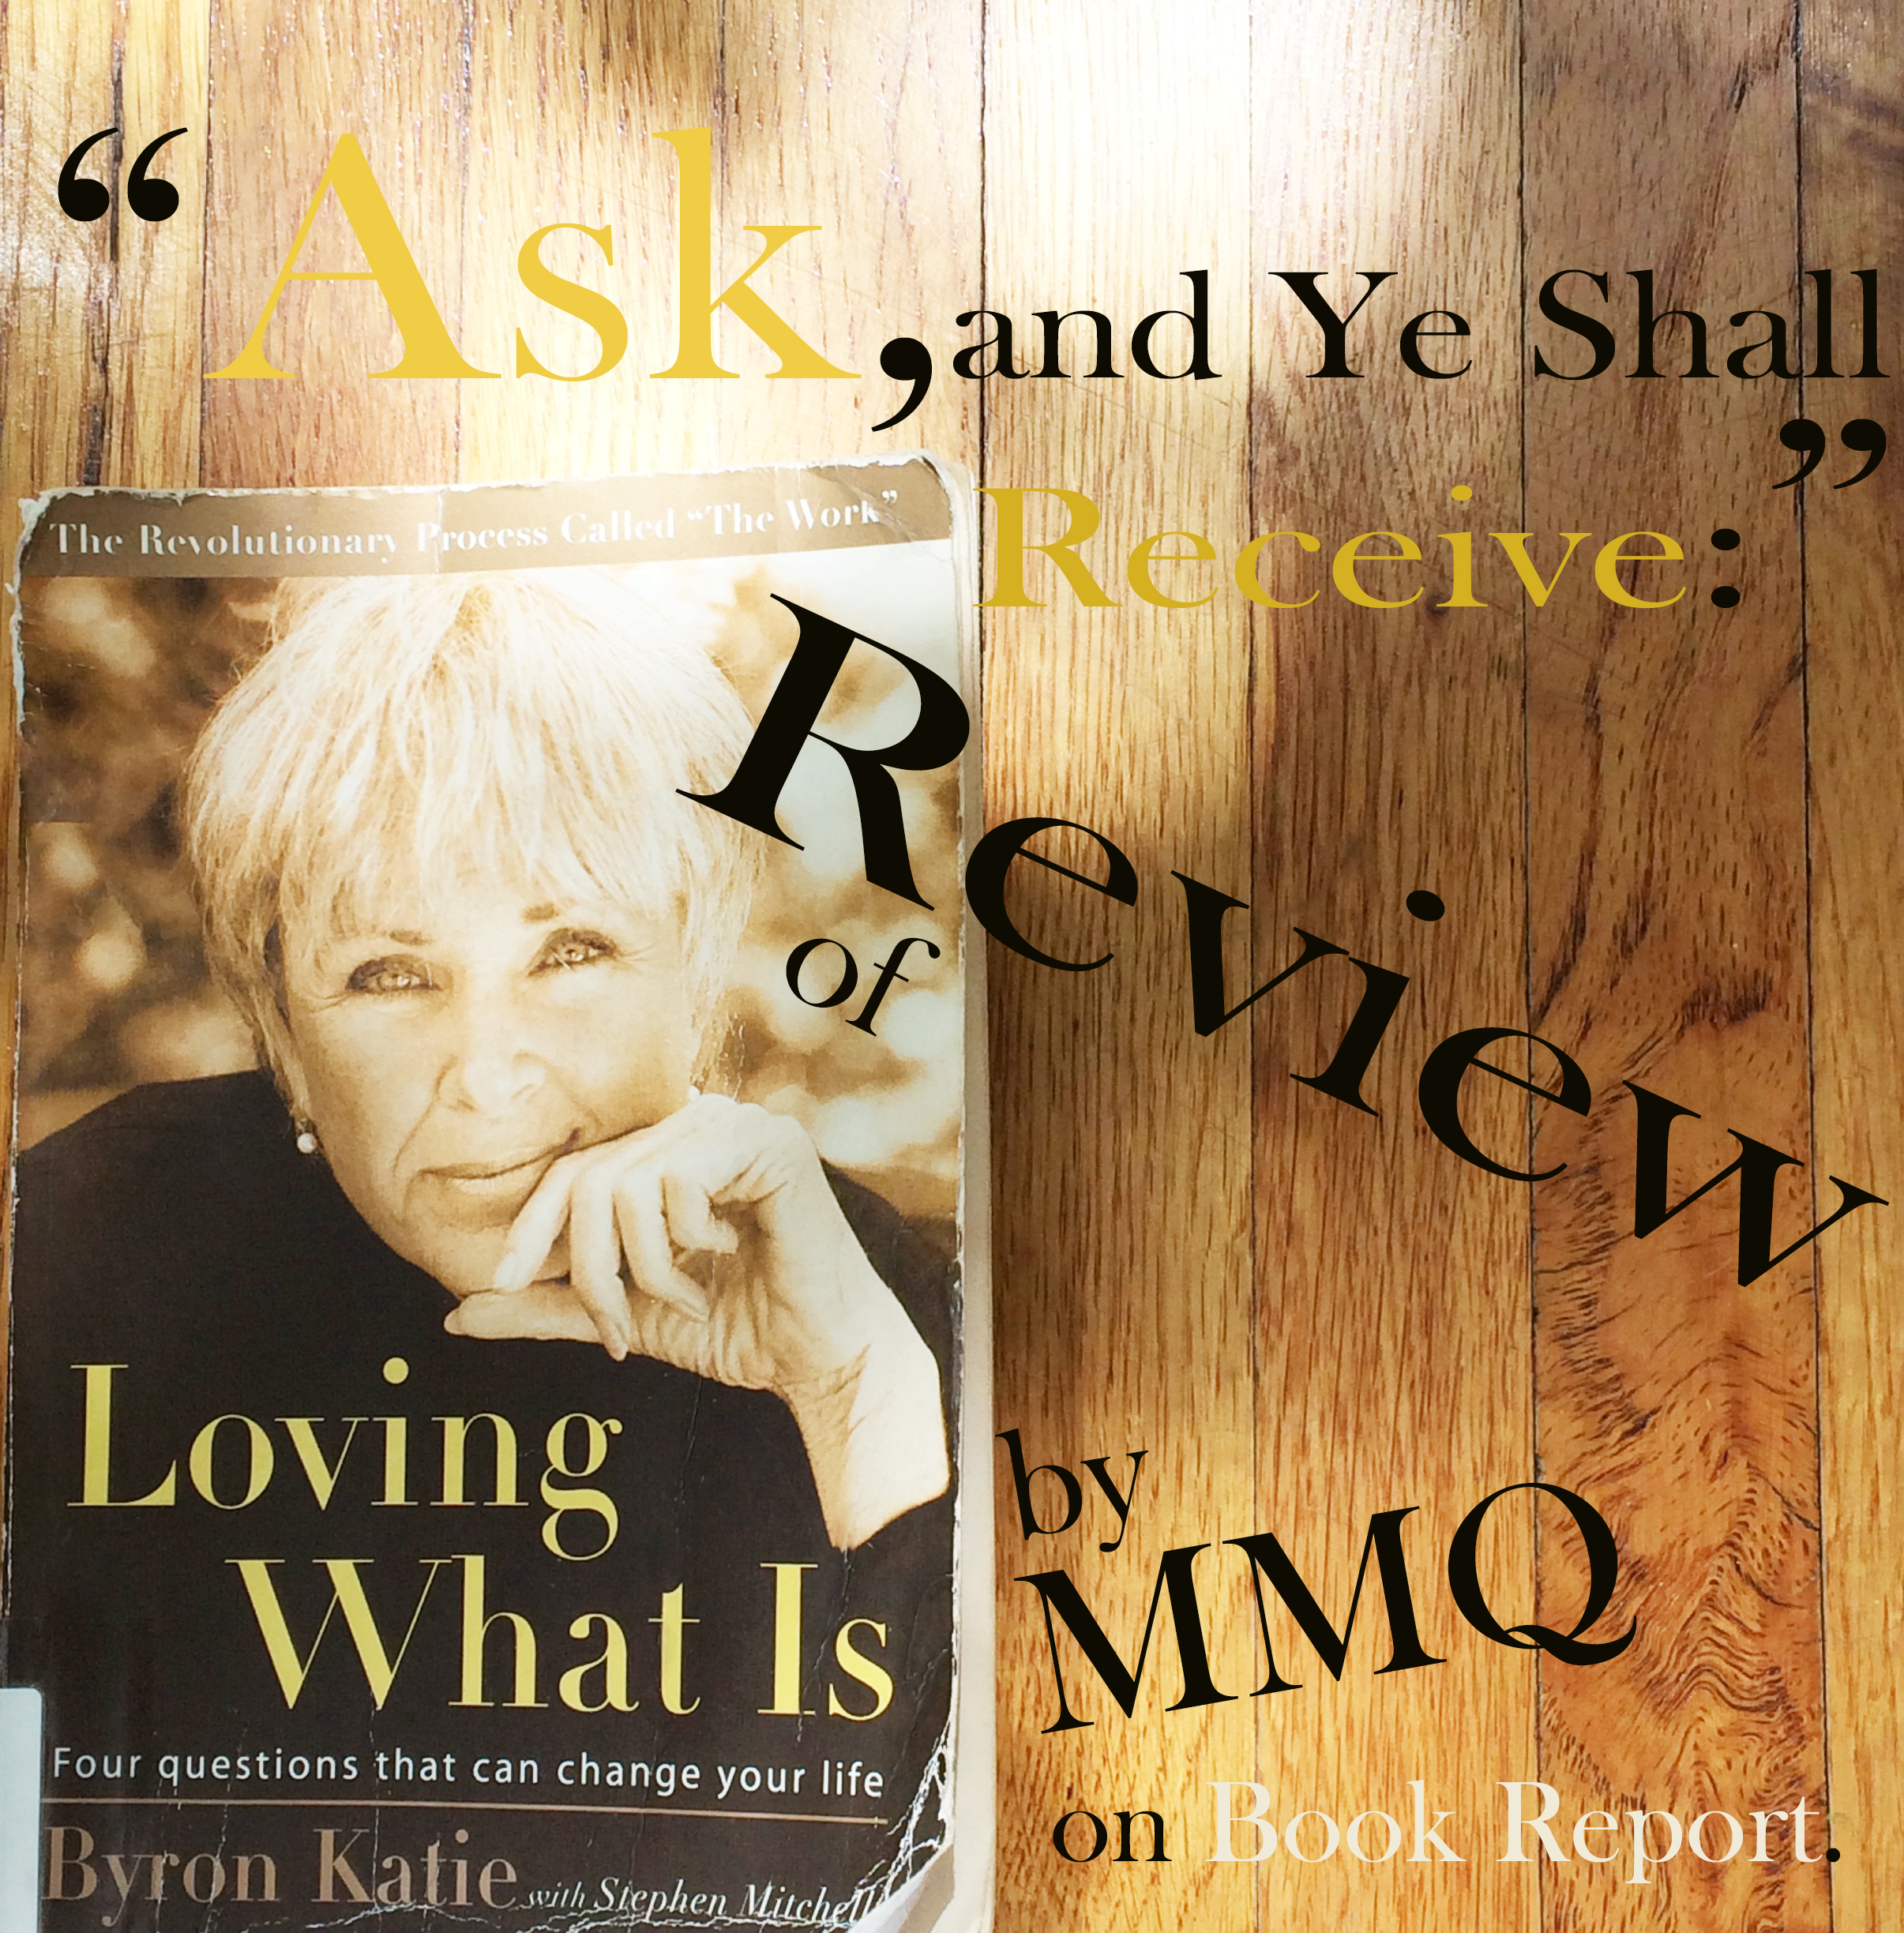 Review of Loving What Is by Byron Katie